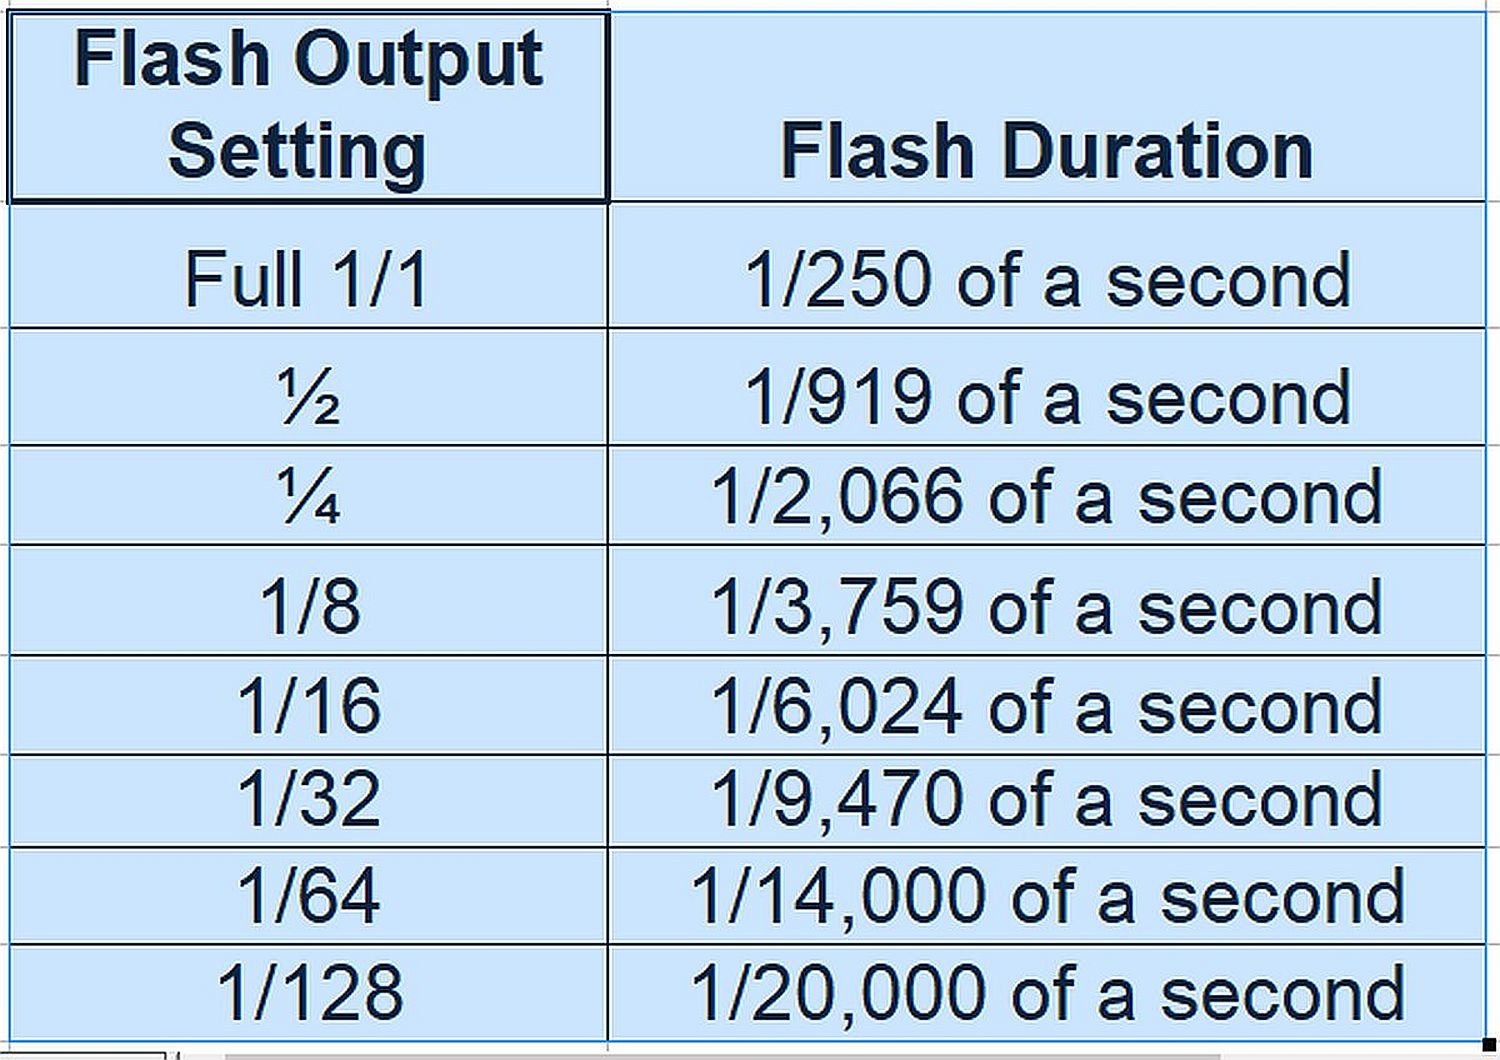 Flash power/duration chart for Canon 580EX.